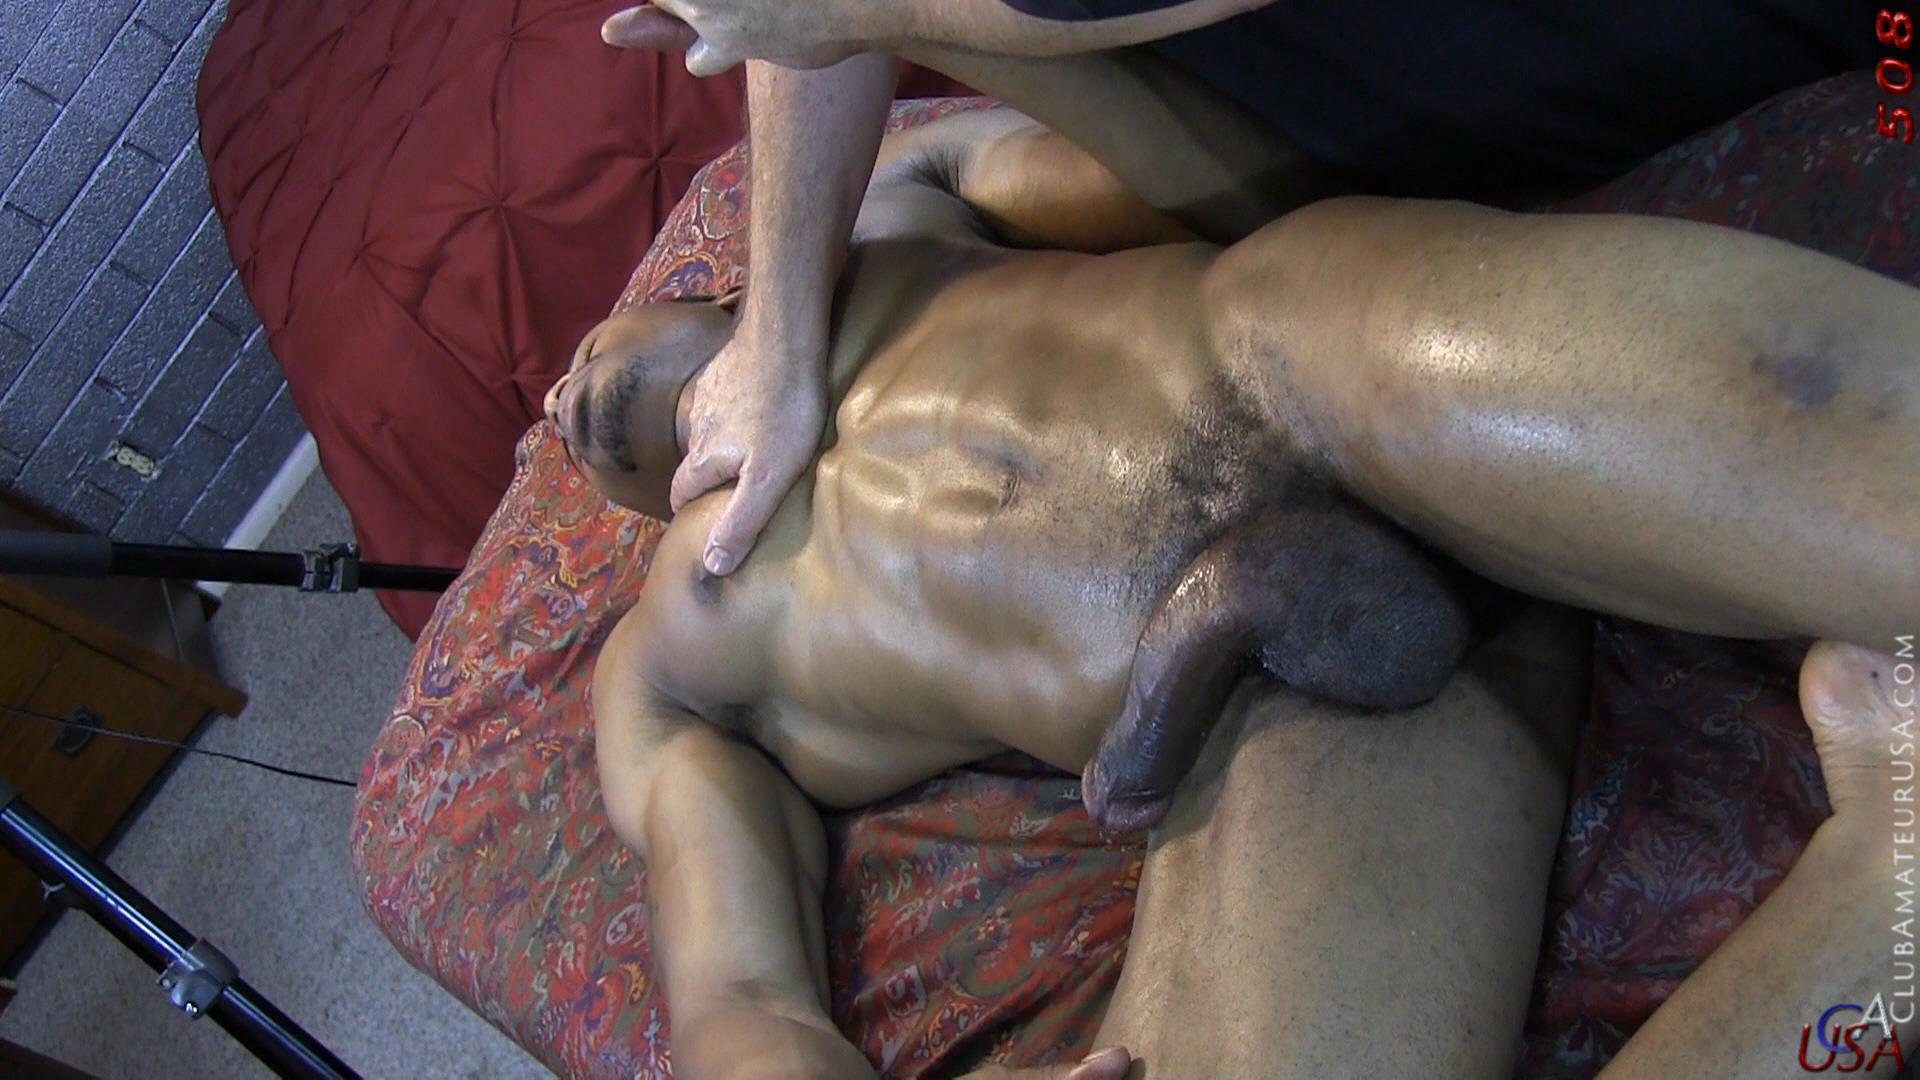 Club Amateur USA Gracen Straight Big Black Cock Getting Sucked With Cum Amateur Gay Porn 54